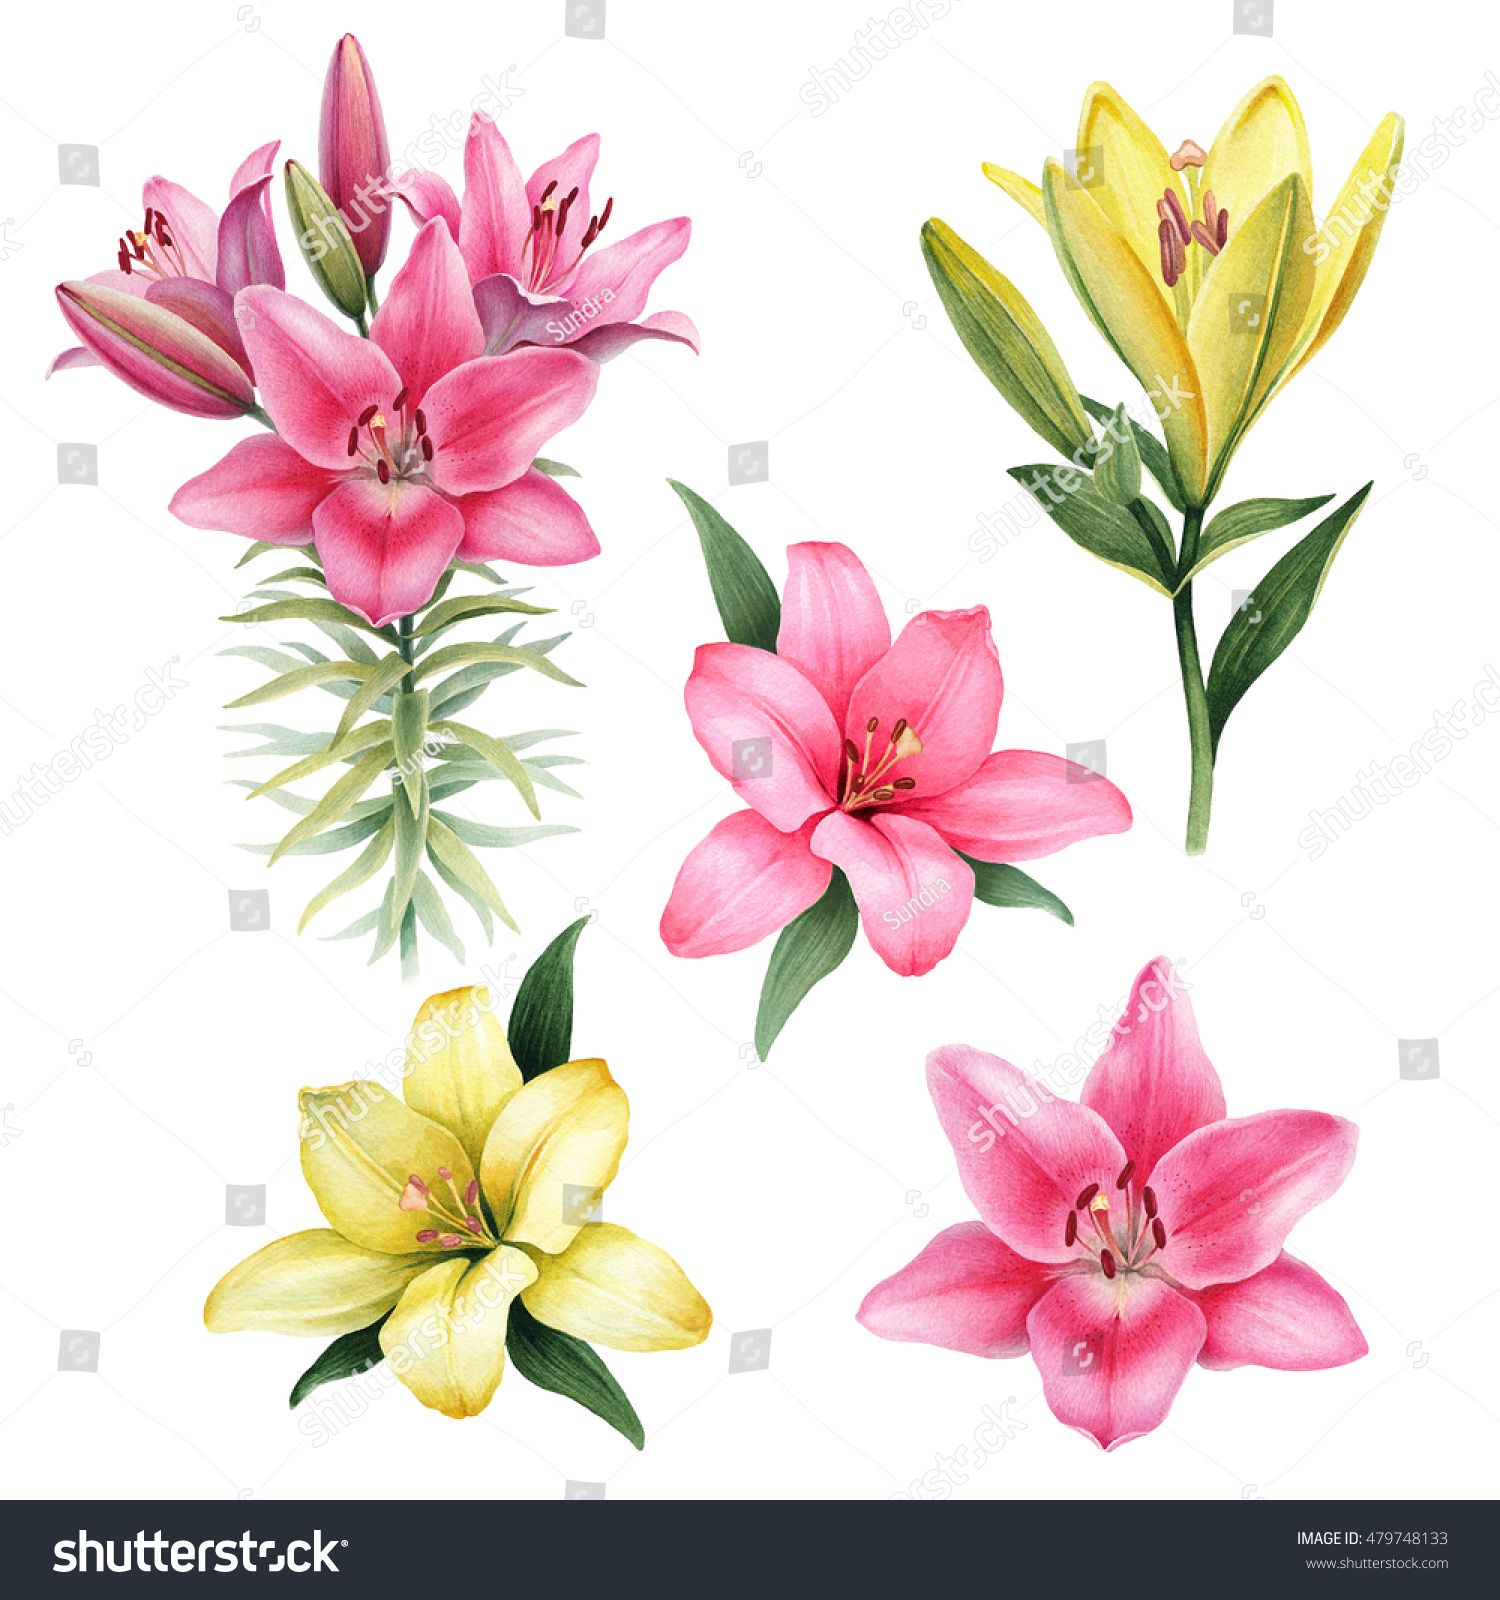 watercolor illustrations lily flowersのイラスト素材 479748133